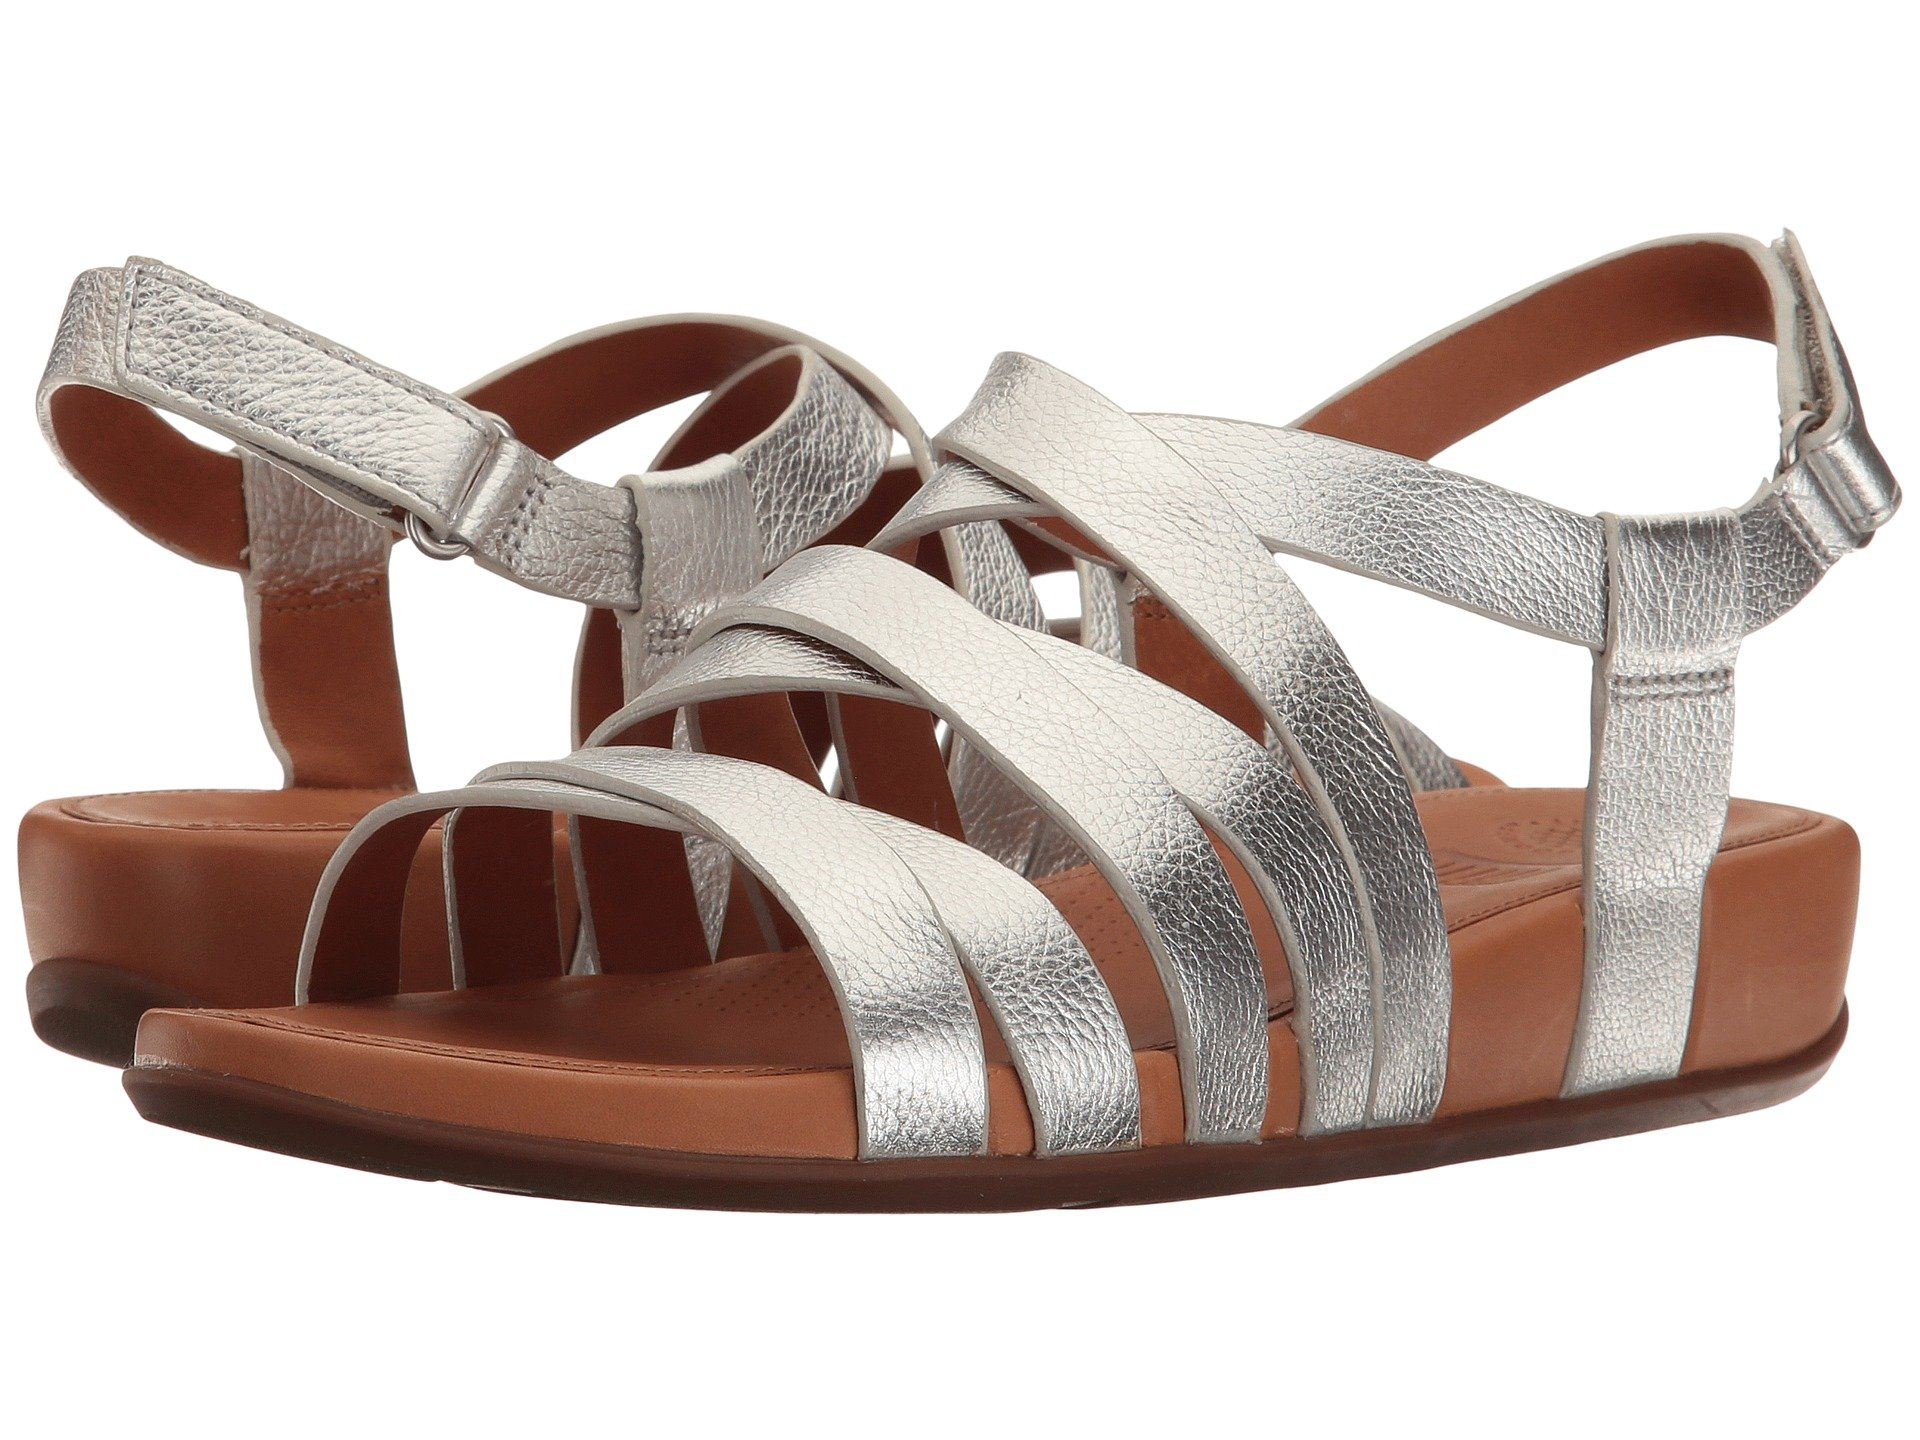 3c6c88ed8cbe6e FITFLOP LUMY LEATHER SANDAL